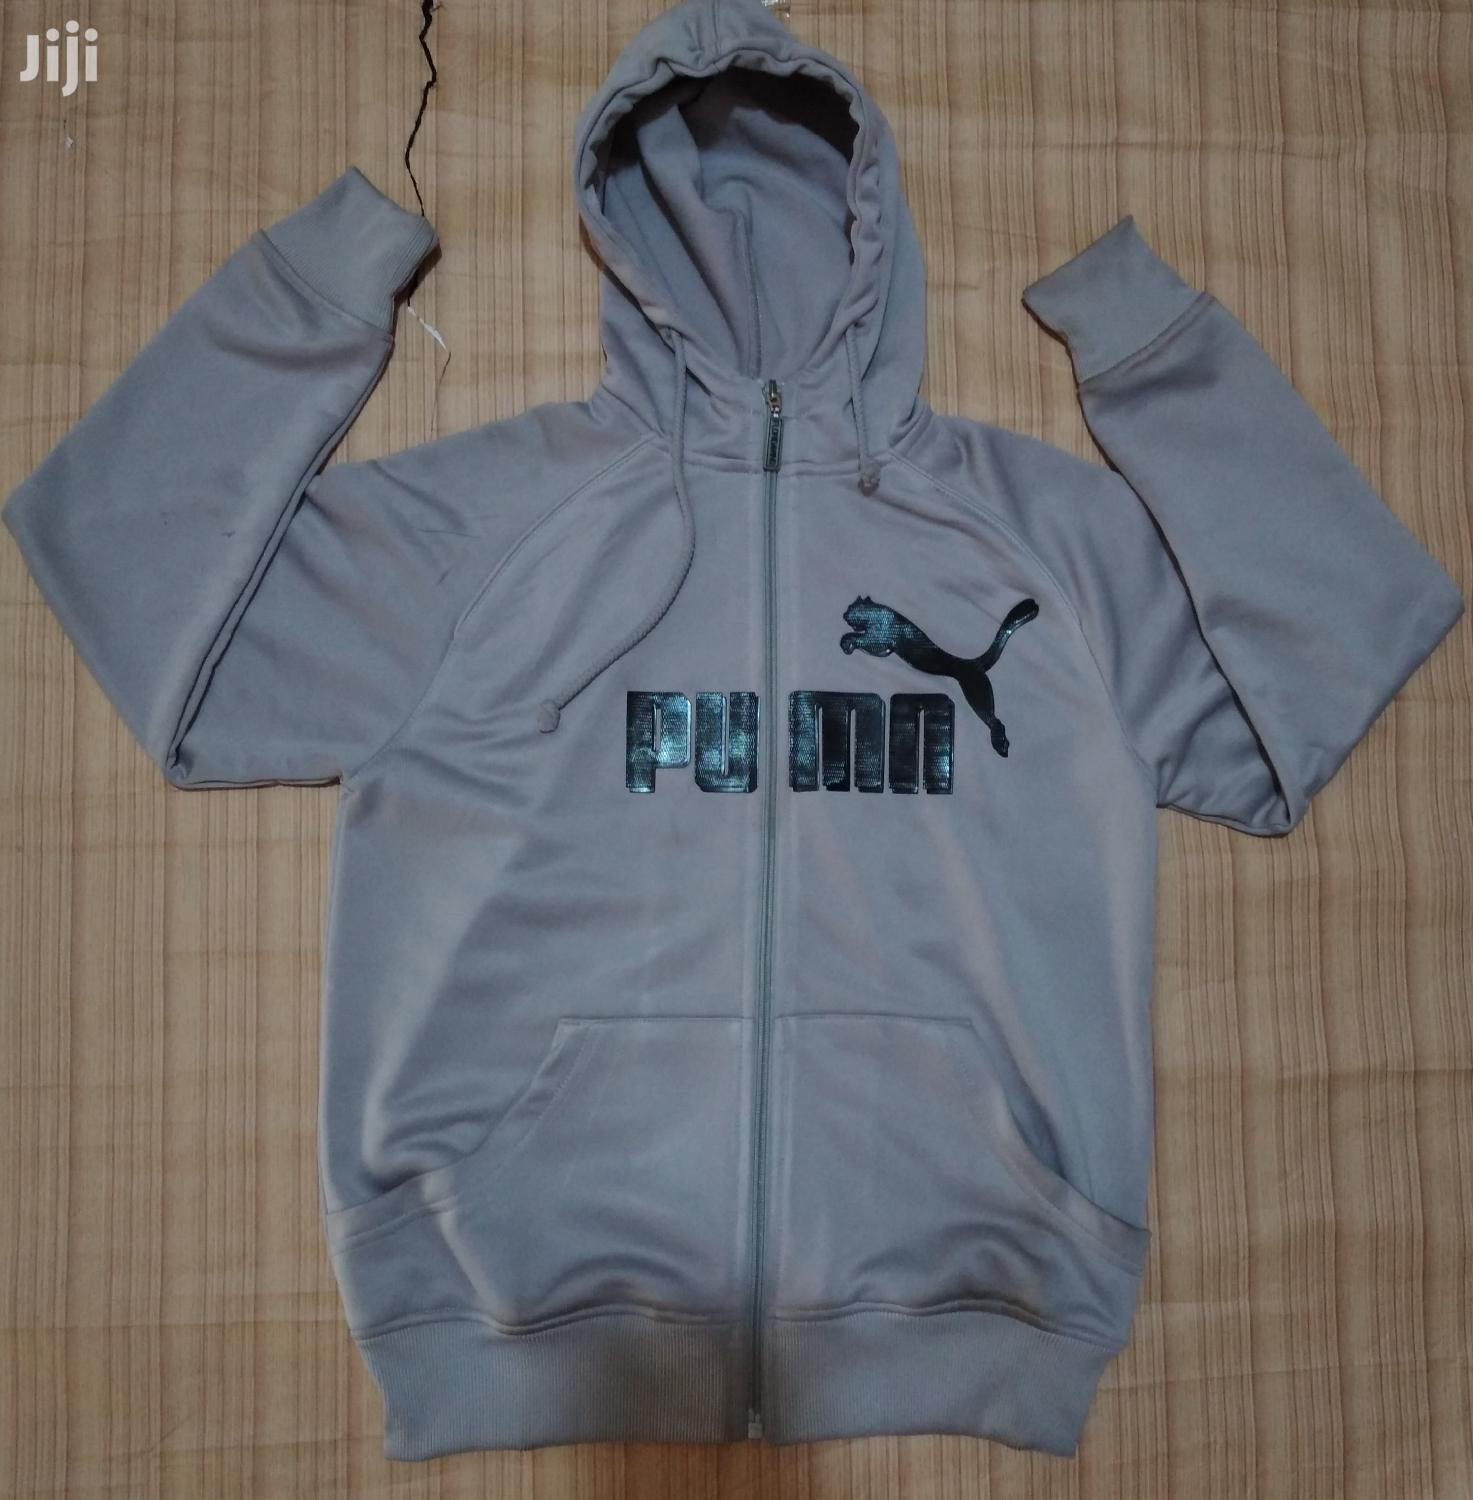 Nike Hoodies For Kids | Clothing for sale in Achimota, Greater Accra, Ghana